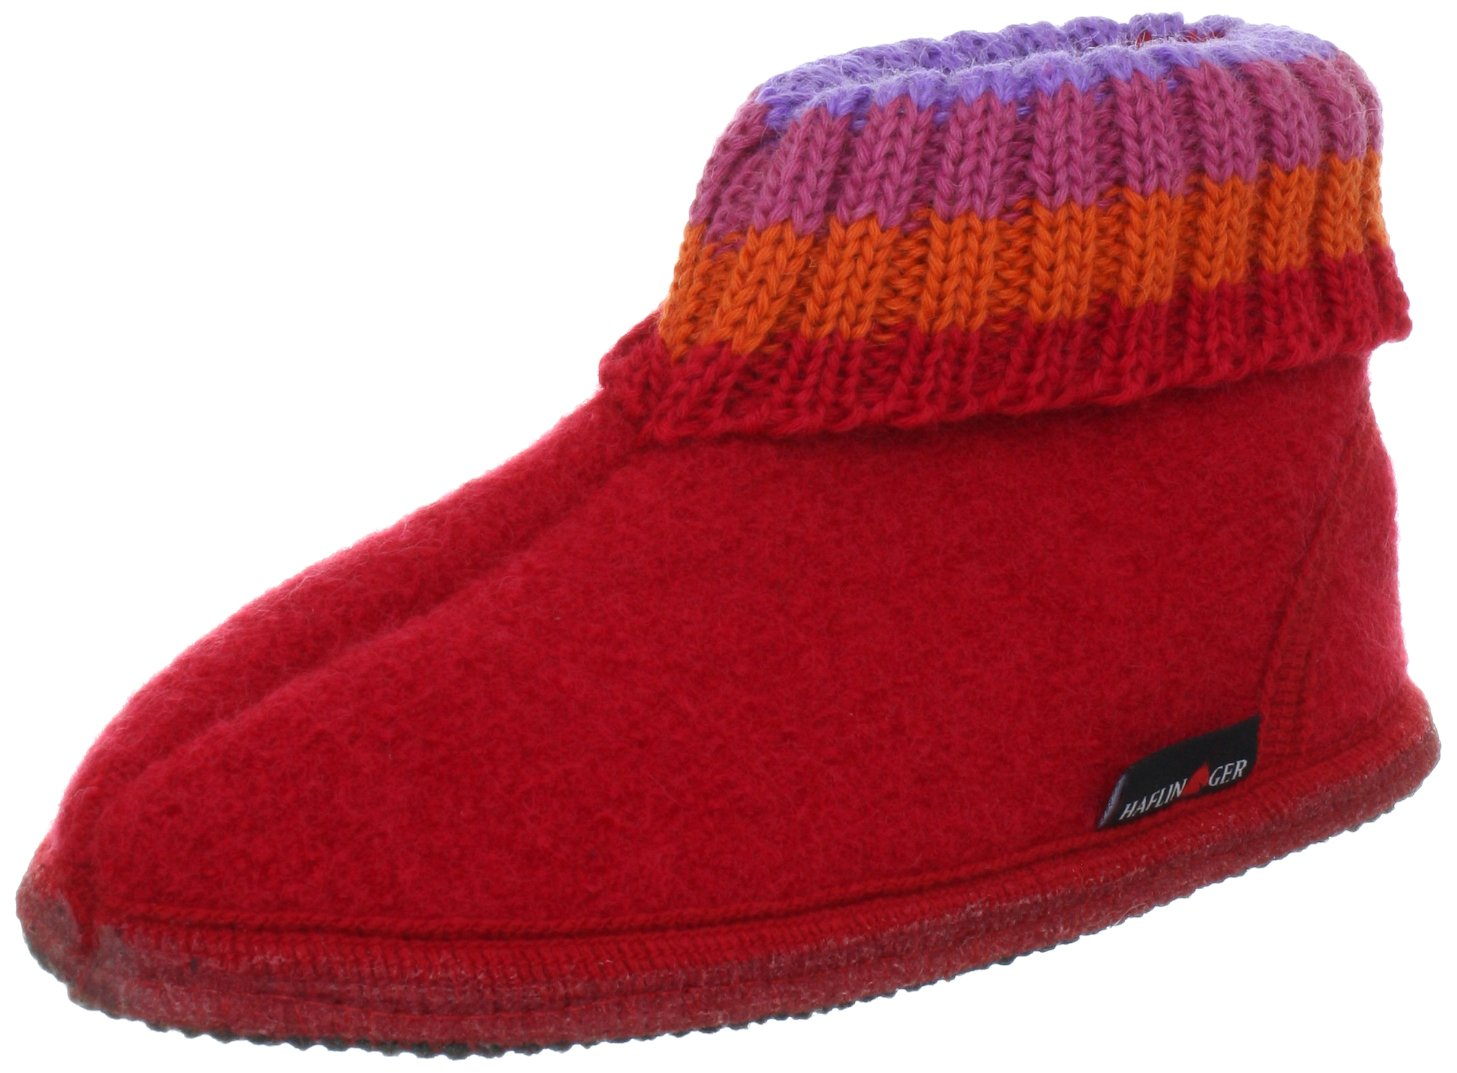 Haflinger Chaussons Paul Hüttenschuh Paul, Chaussons mixte adulte Paul, Rouge Rouge (Rouge-v.1) dd4f3c2 - boatplans.space